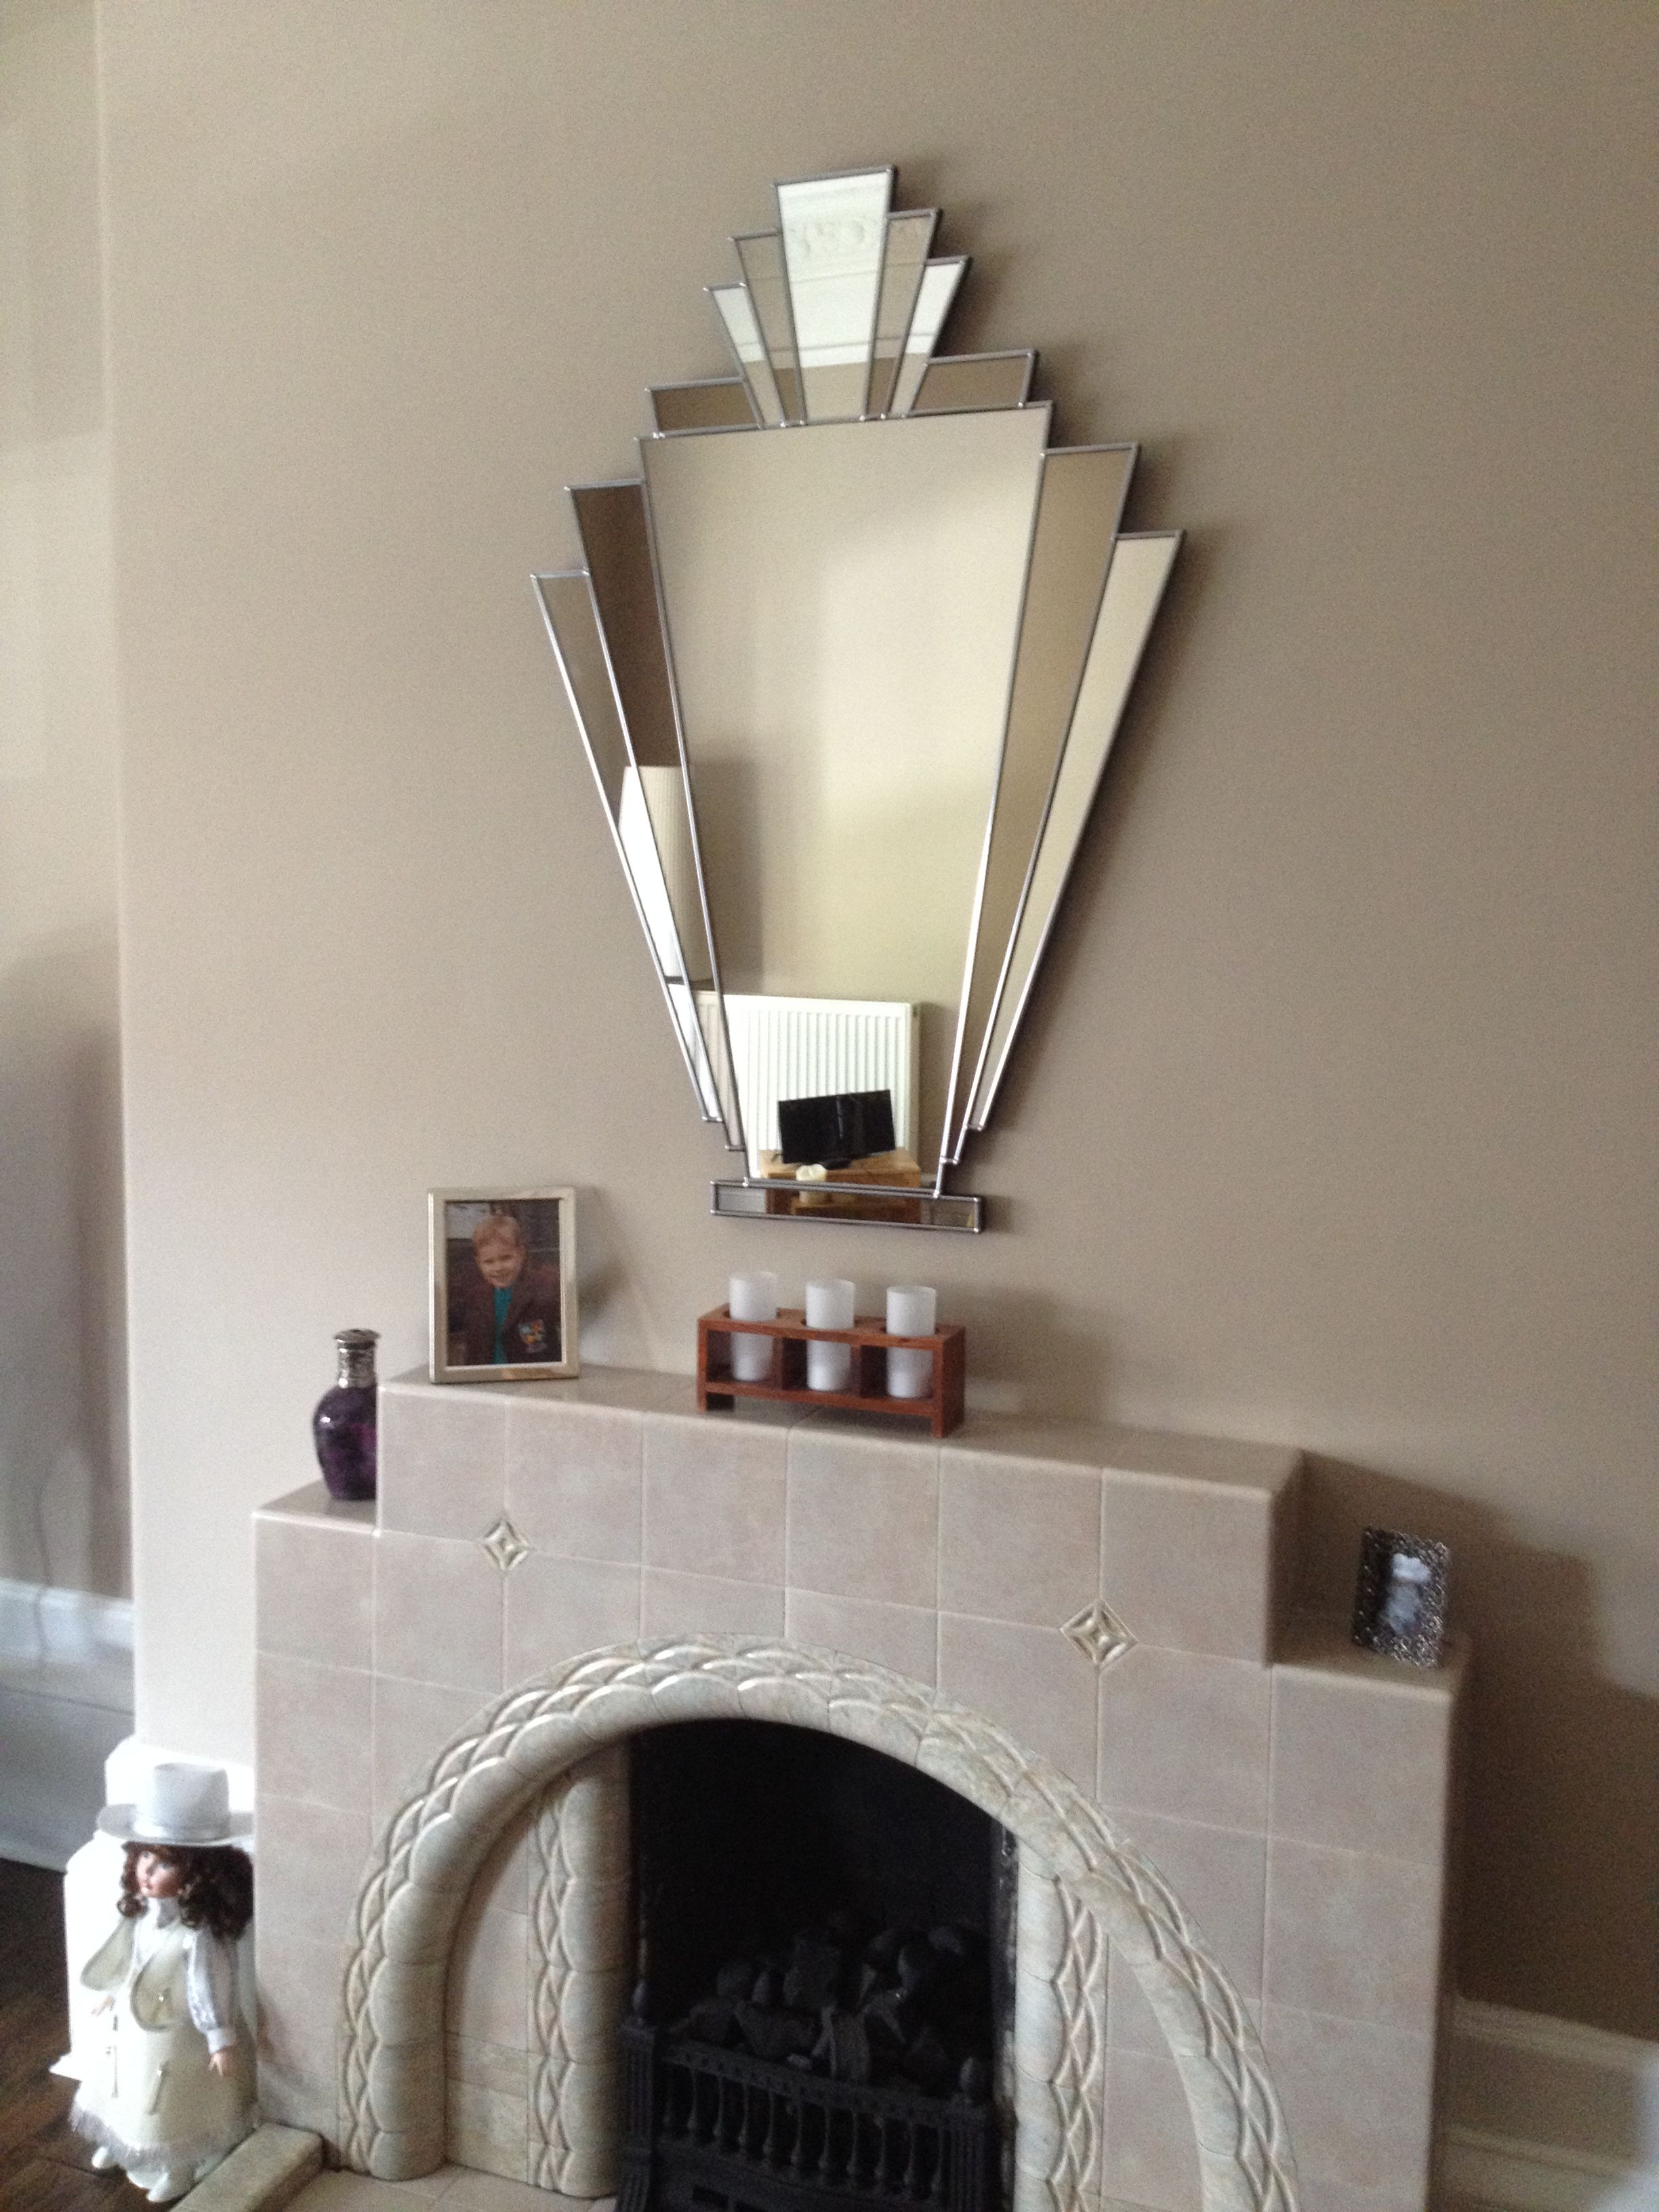 convex waxed a fireplace mirror cavetto image blog for decorative round above in hanging essential finish large tips black